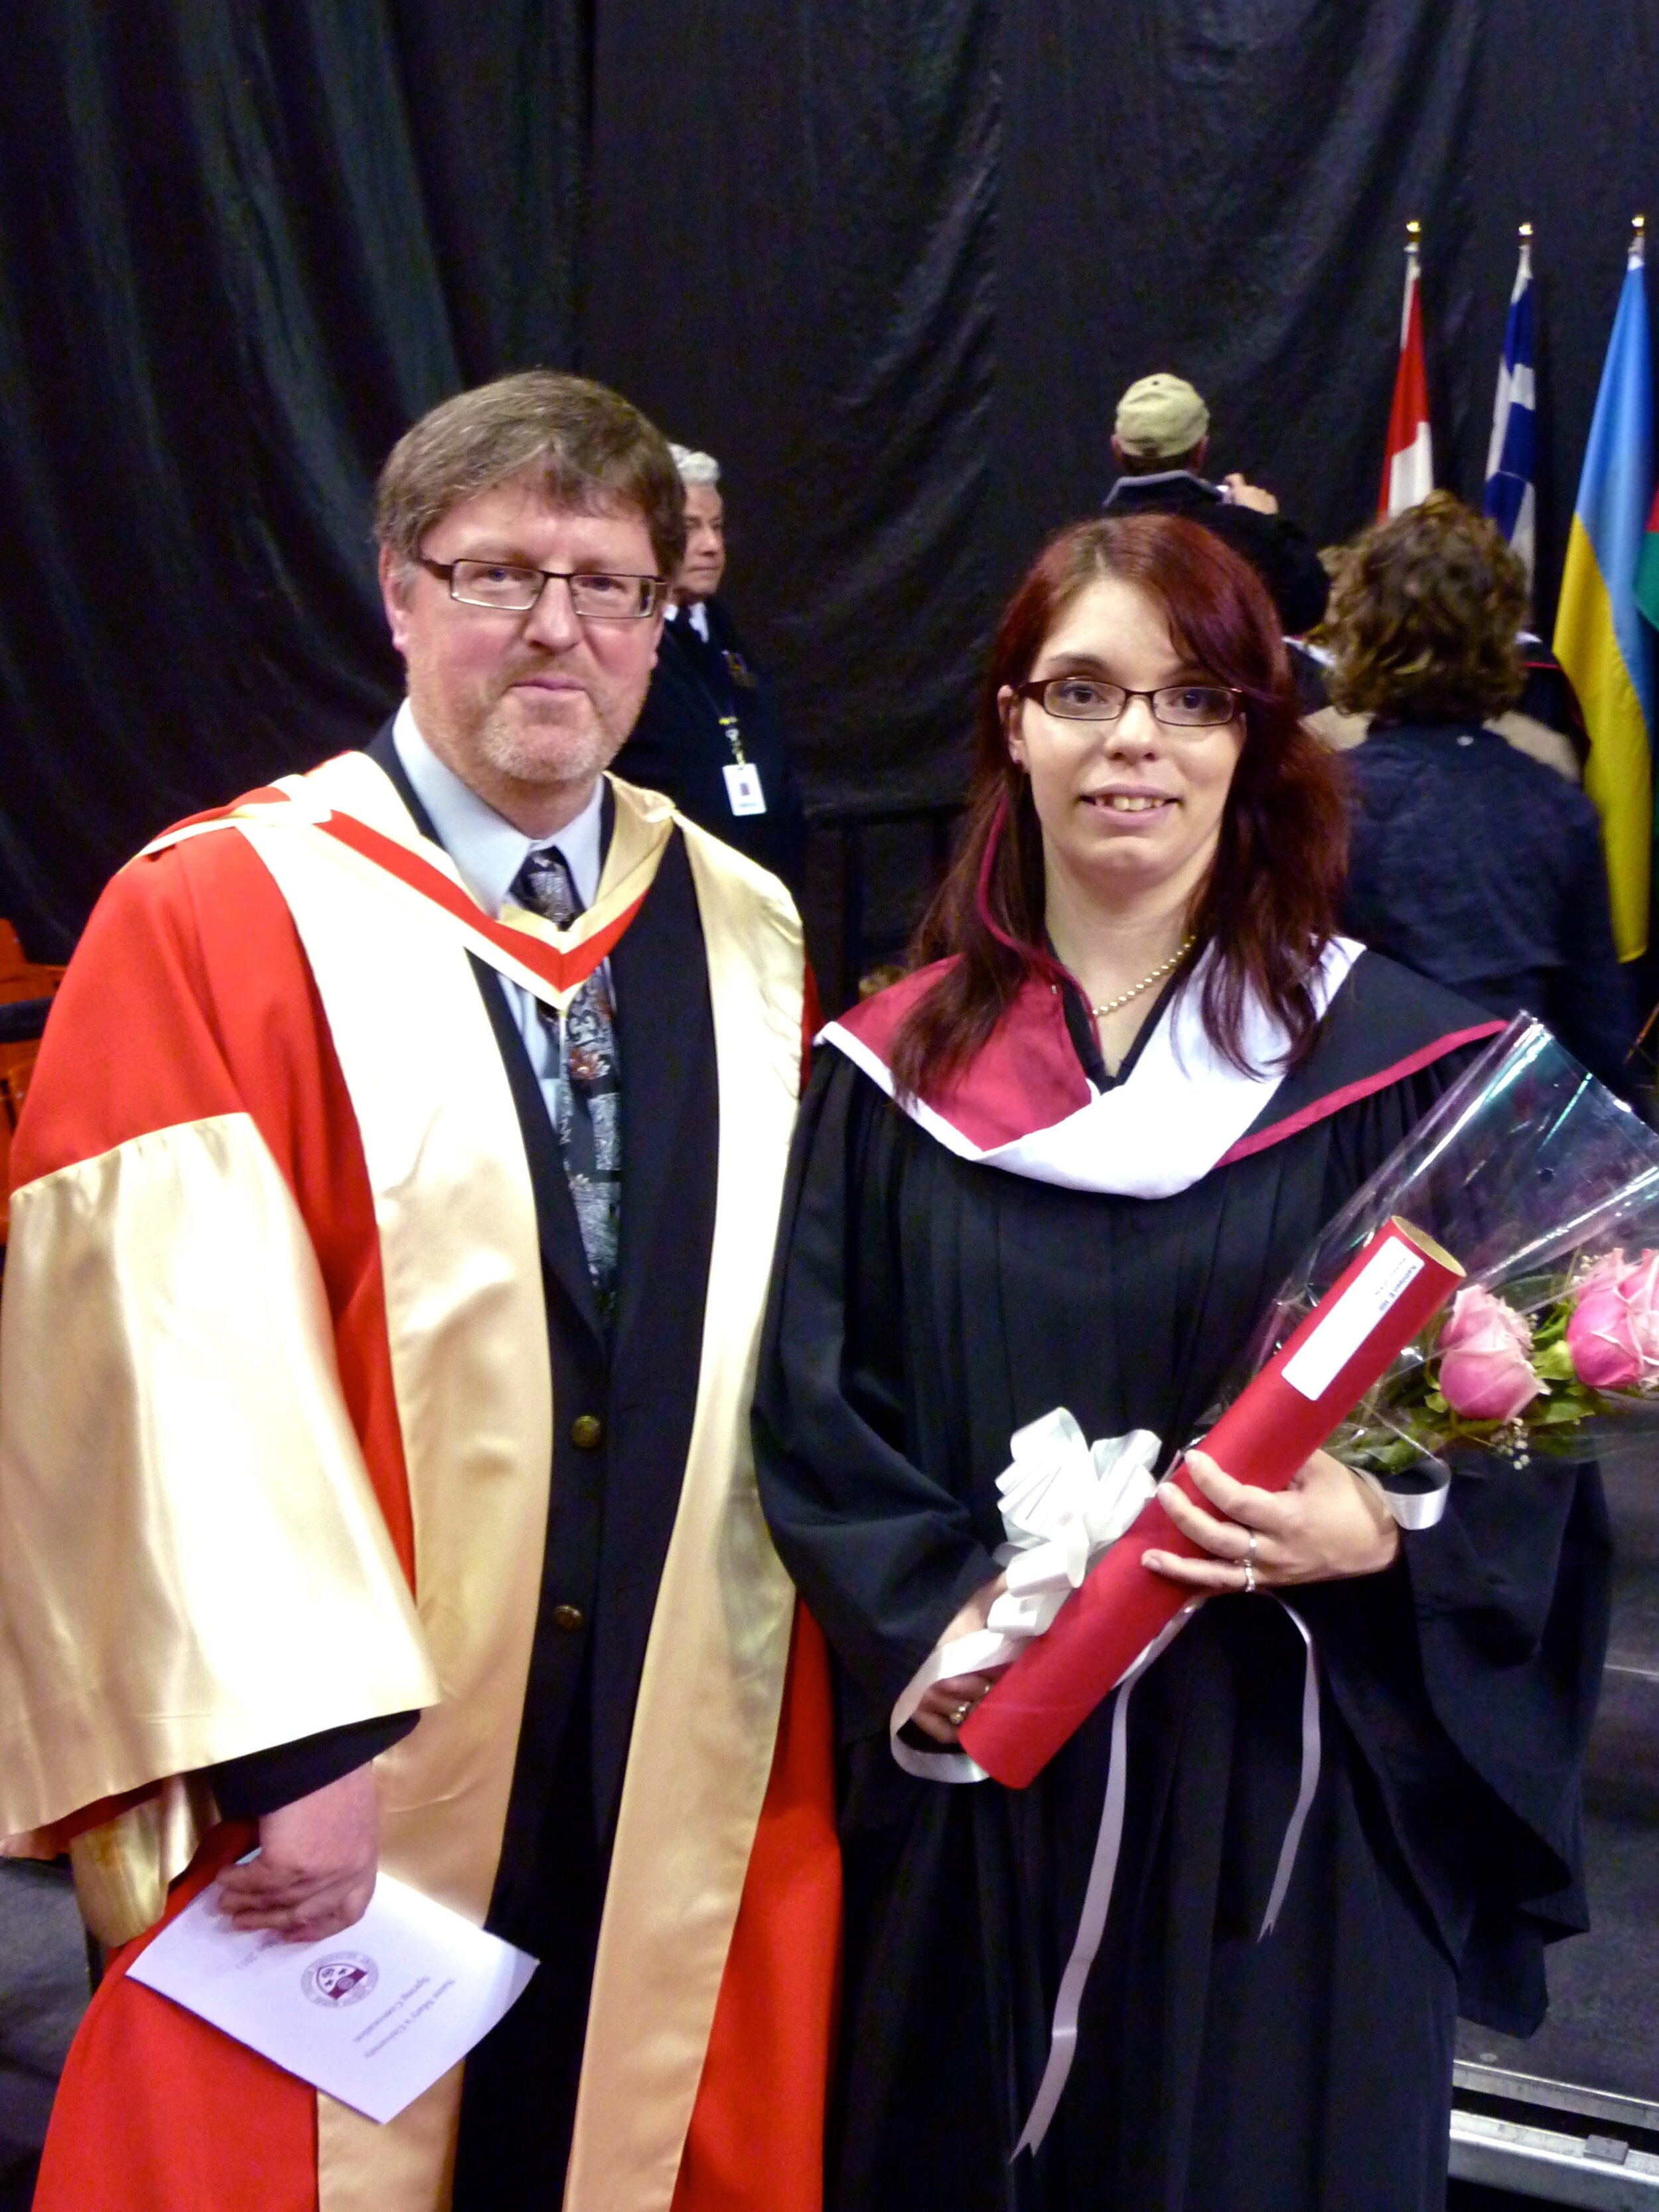 On graduation day in 2011, with Dr. Pádraig Ó Siadhail, the D'Arcy McGee Chair of Irish Studies